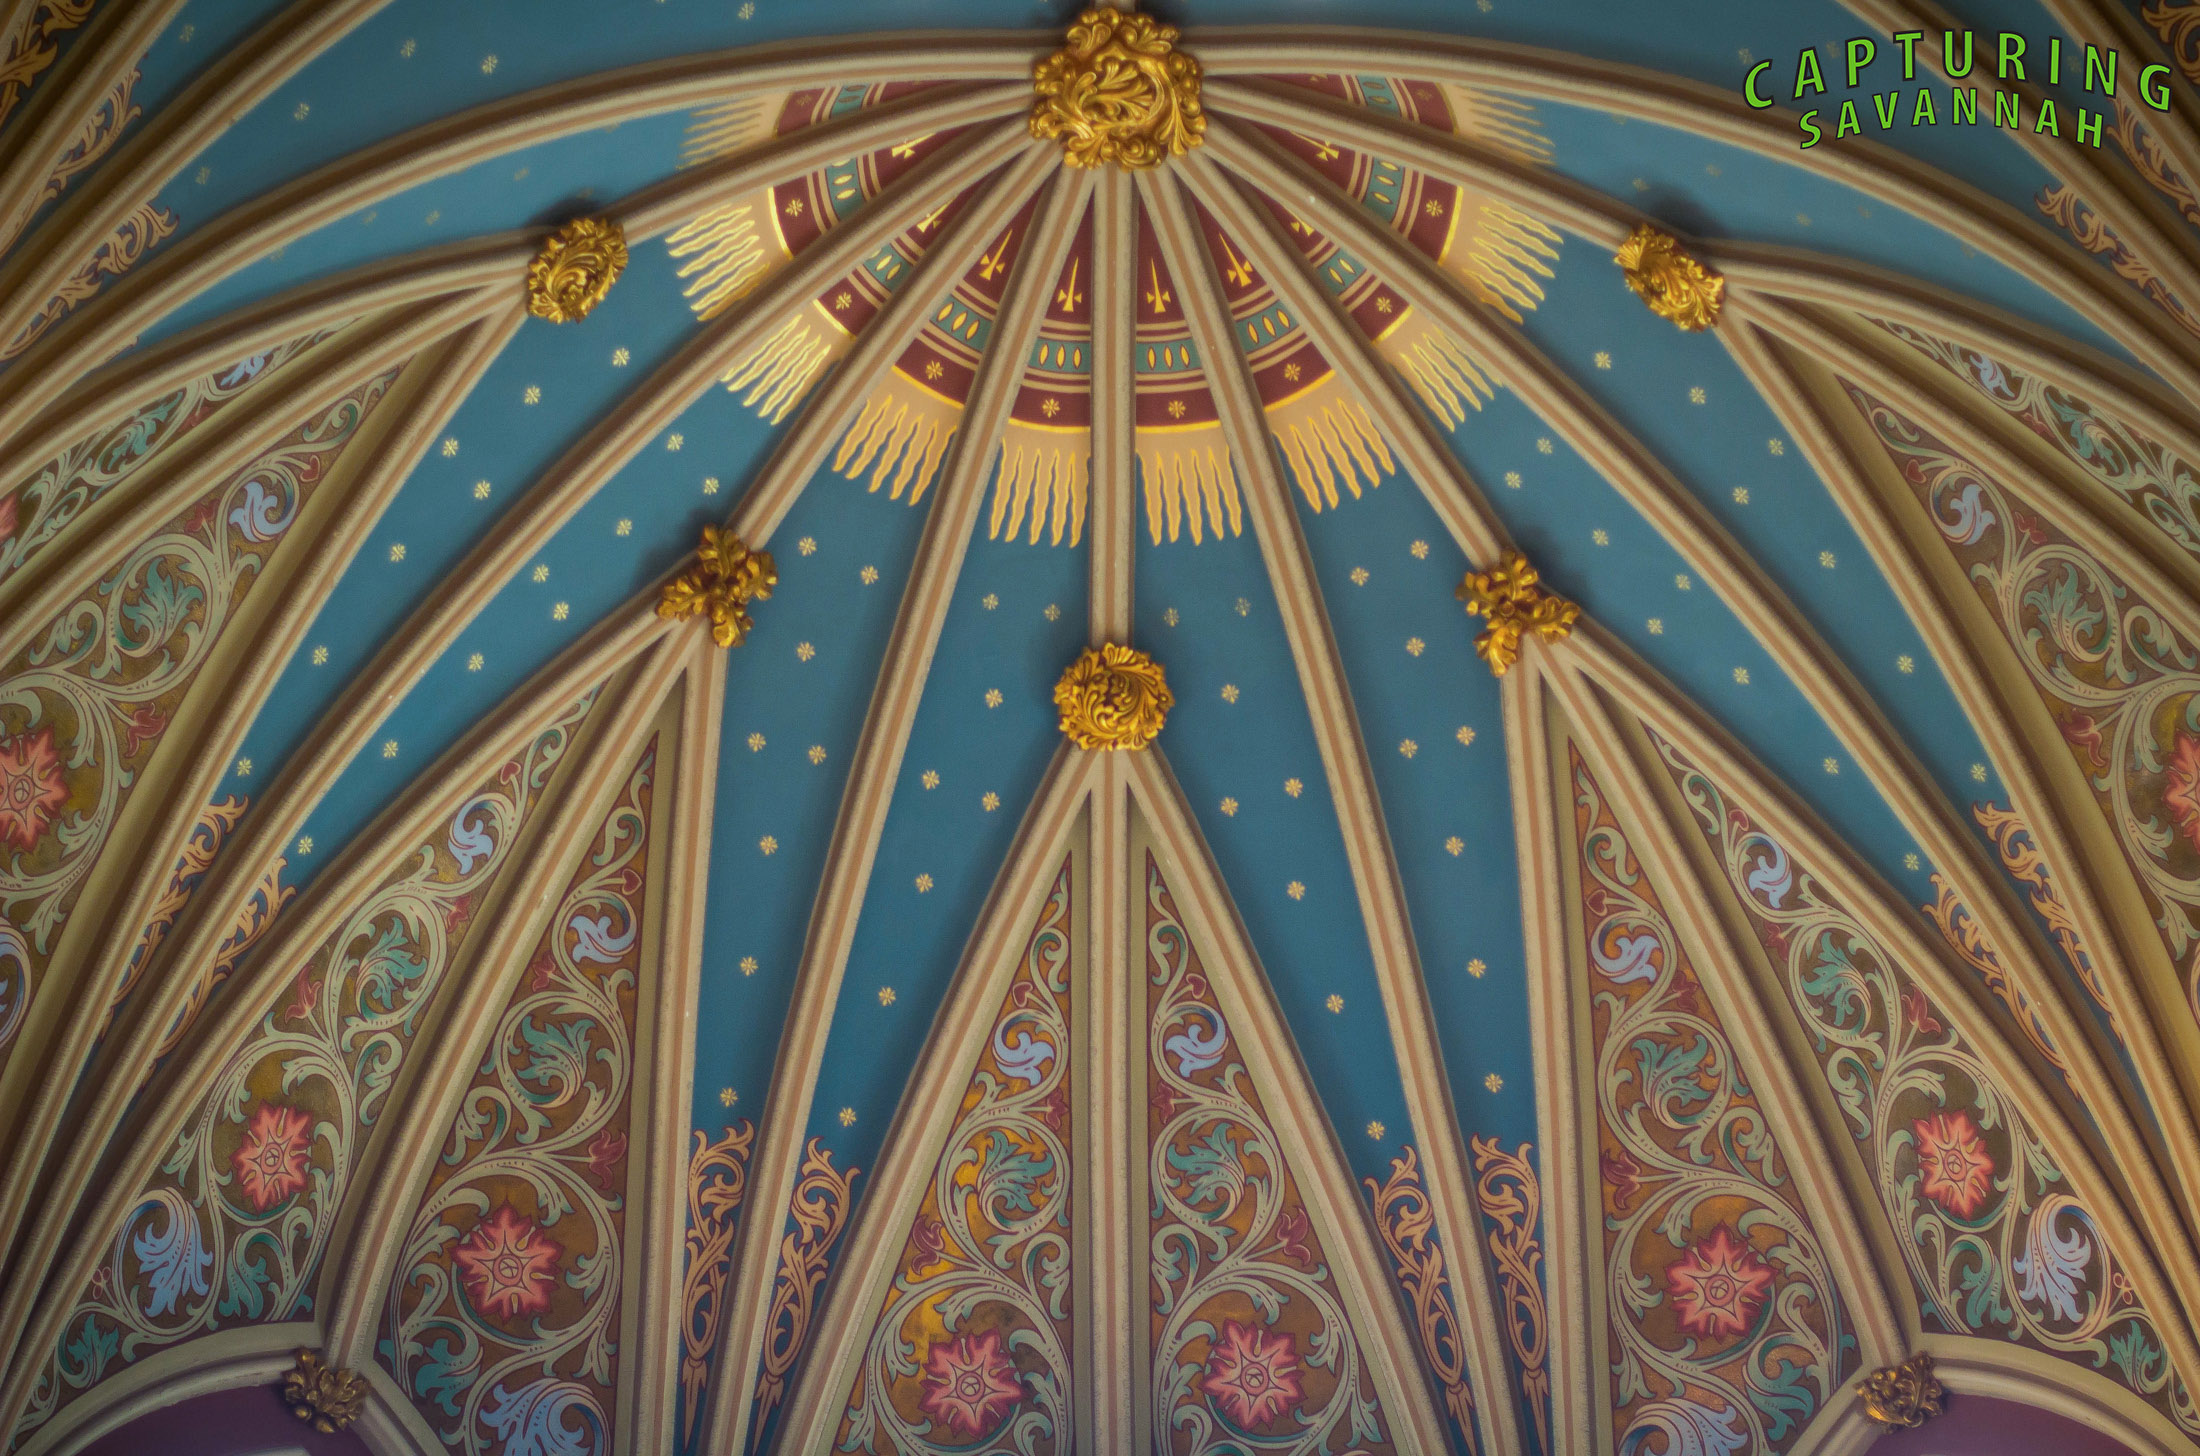 The Saint John's Cathedral is a Savannah treasure! All the paintings, 3-D images, stain glass windows, ect, make for amazingly beautiful images. There are multiple chances for great symmetry imagery throughout the Cathedral.